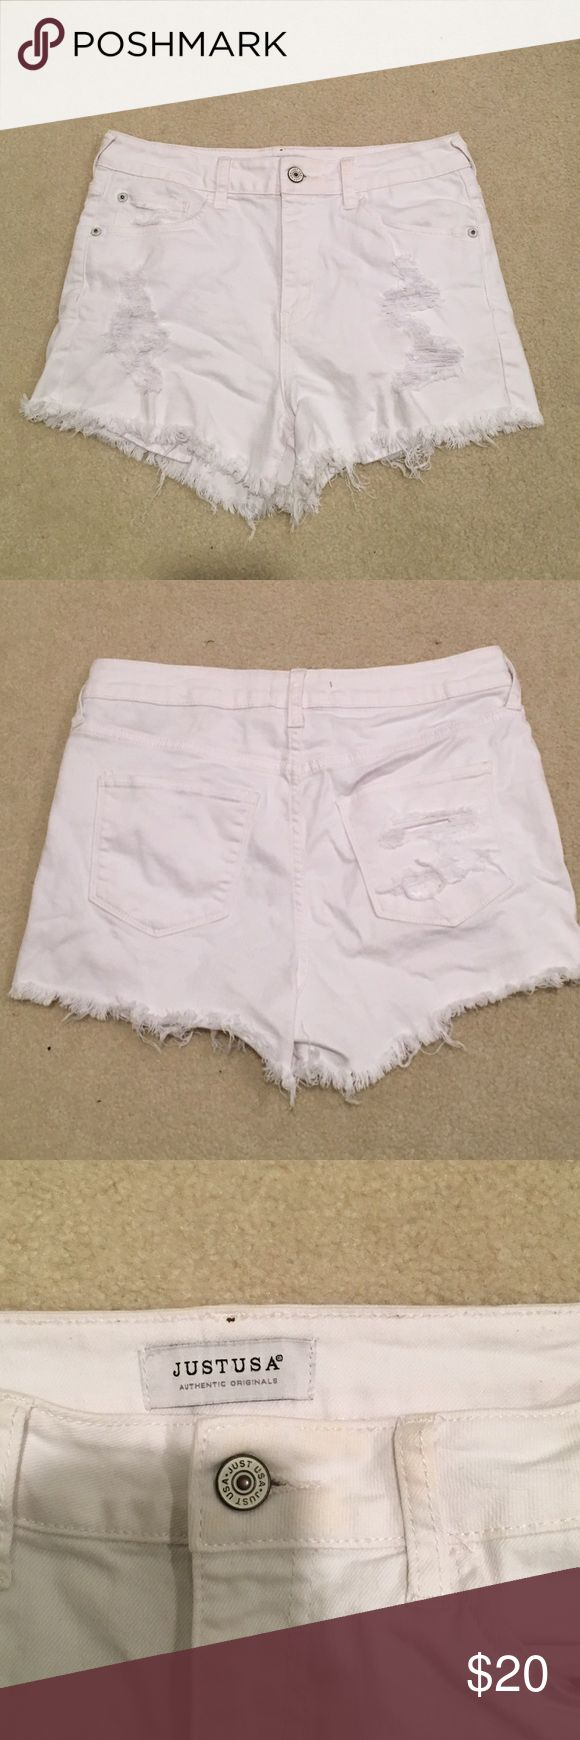 White Jean Shorts White ripped Jean shorts. Perfect condition. Worn once! JUSTUSA Shorts Jean Shorts